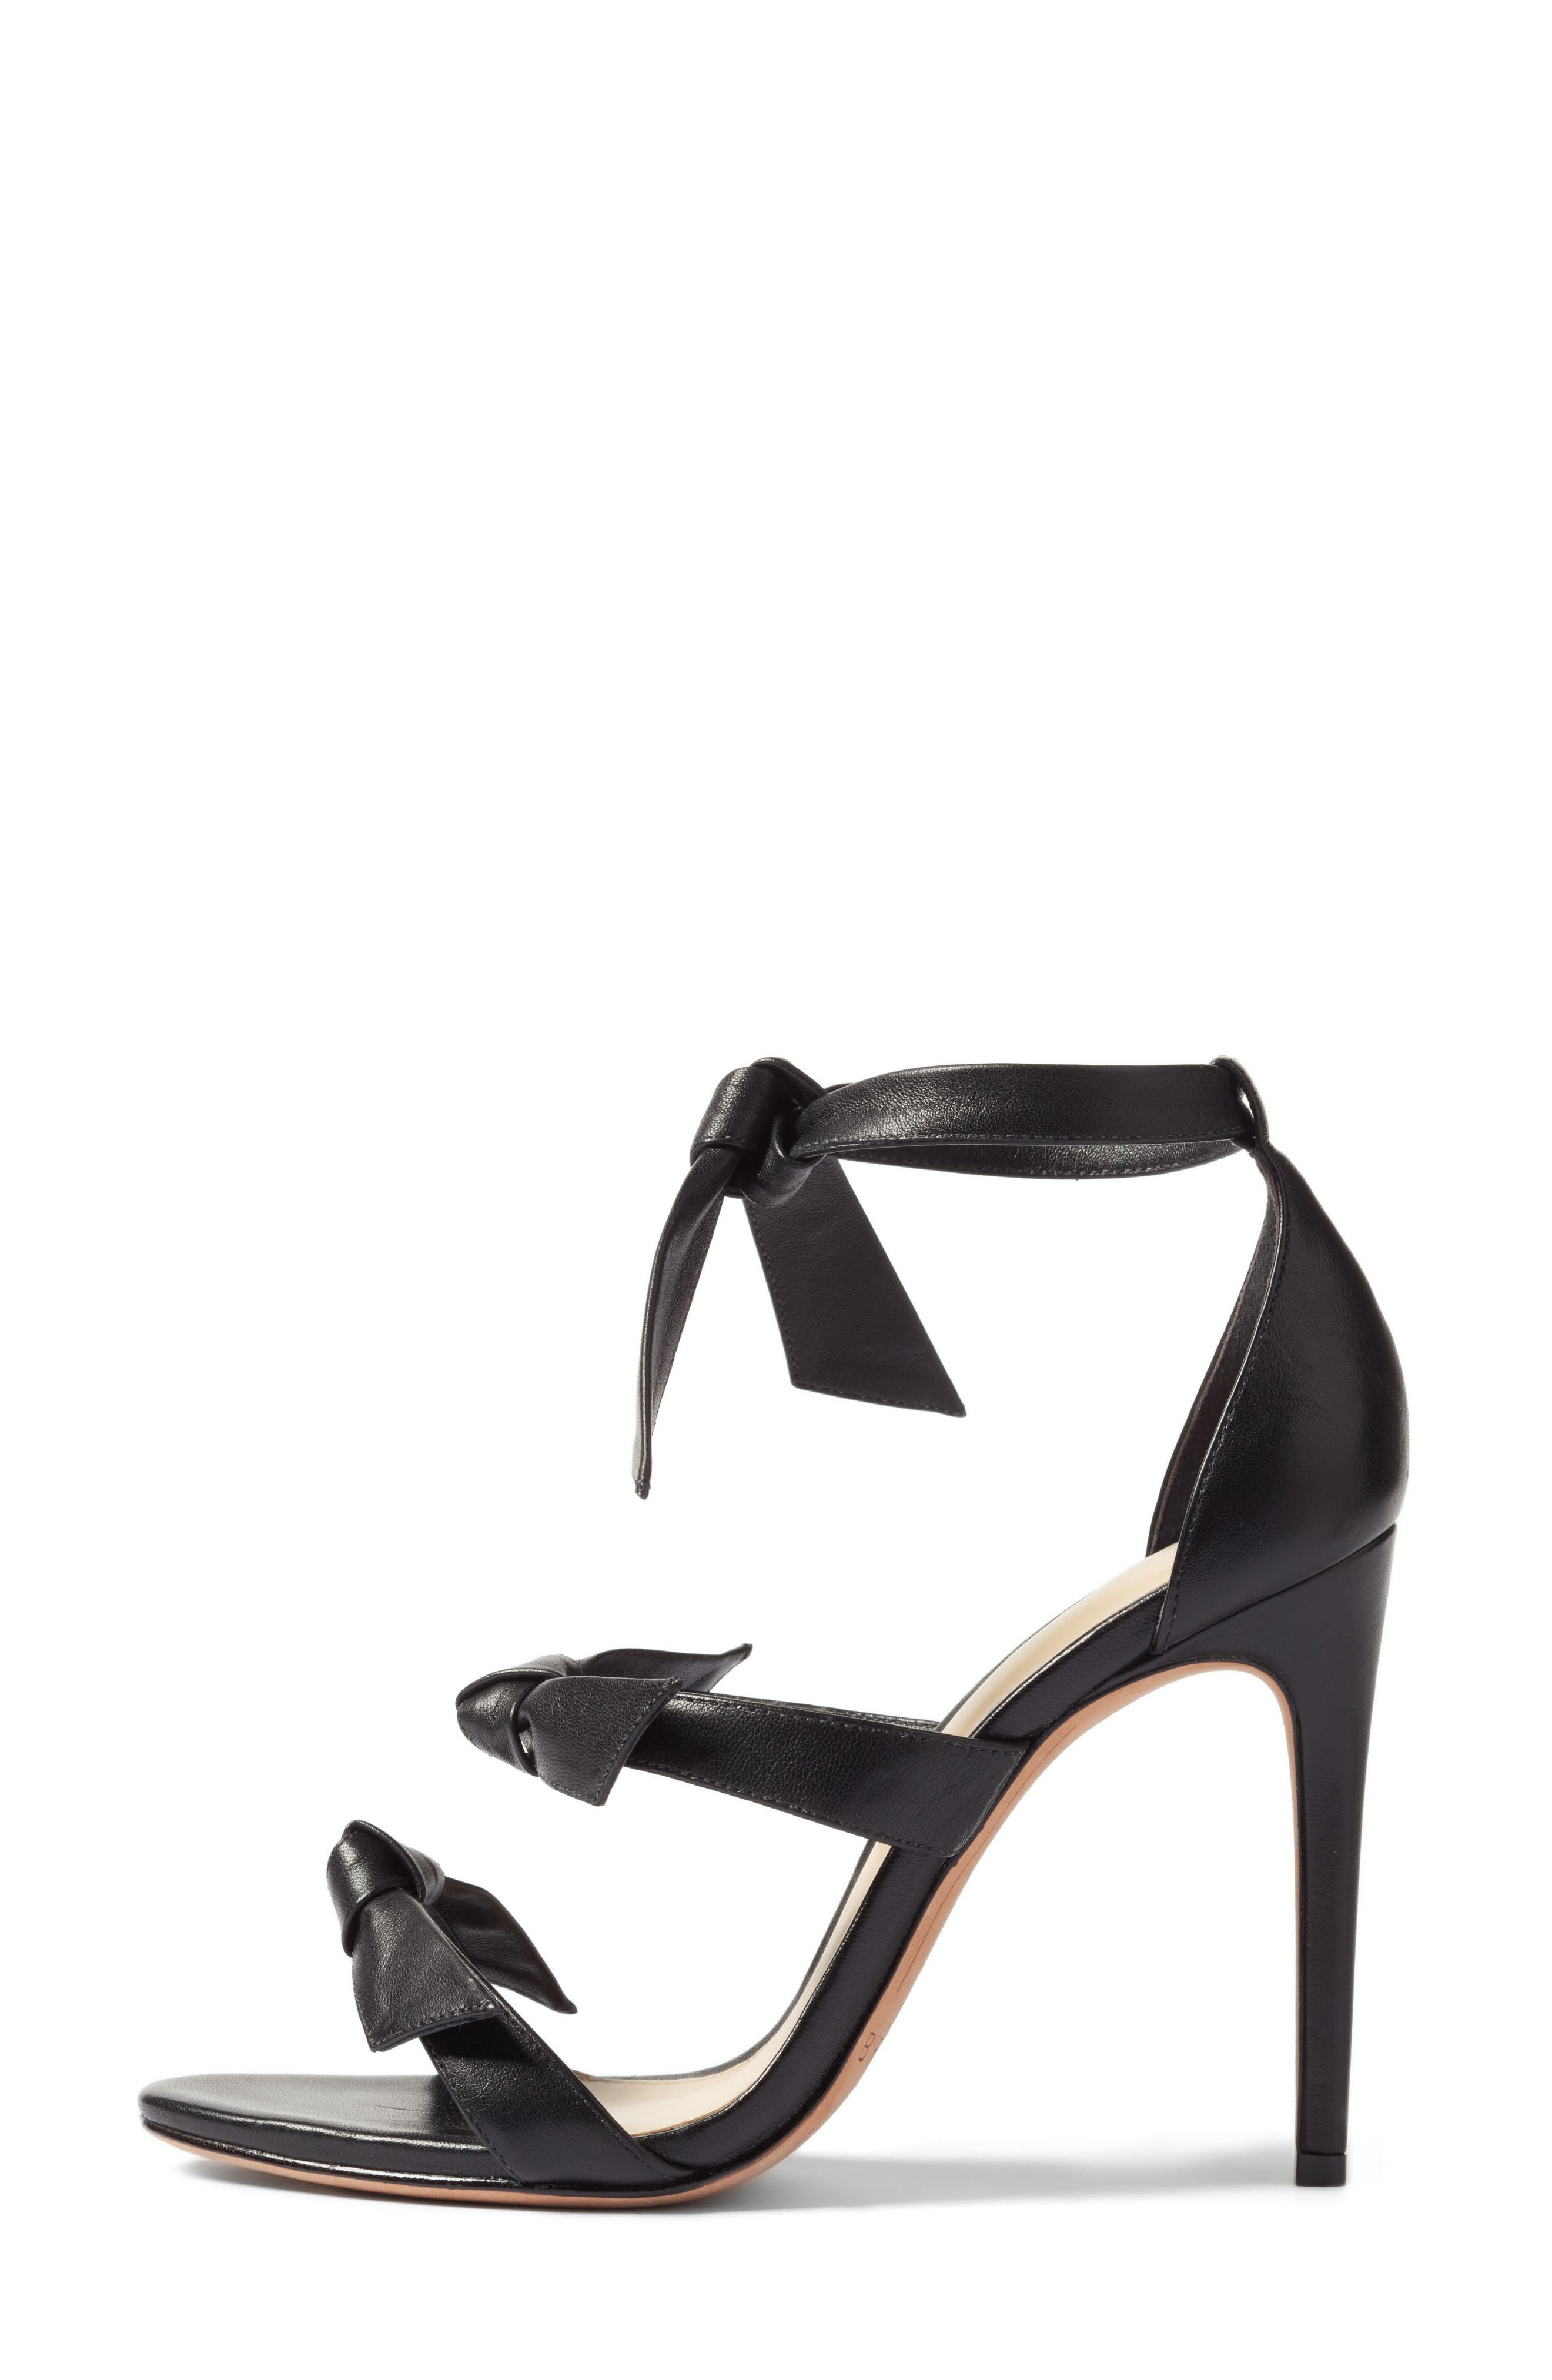 Alternate Image 3  - Alexandre Birman Lolita Sandal (Women)